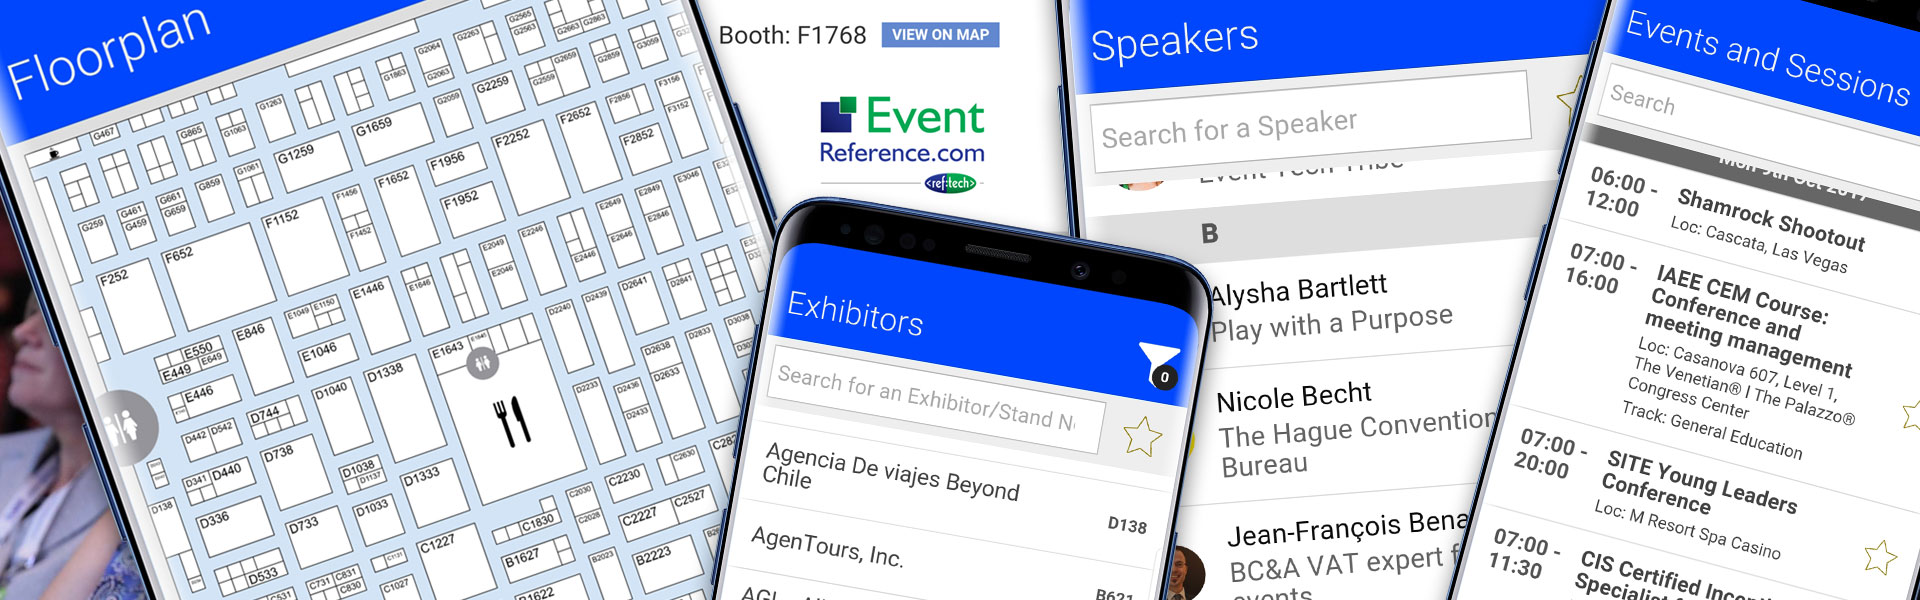 Get your attendees fully engaged by offering them an EventReference Event App from RefTech